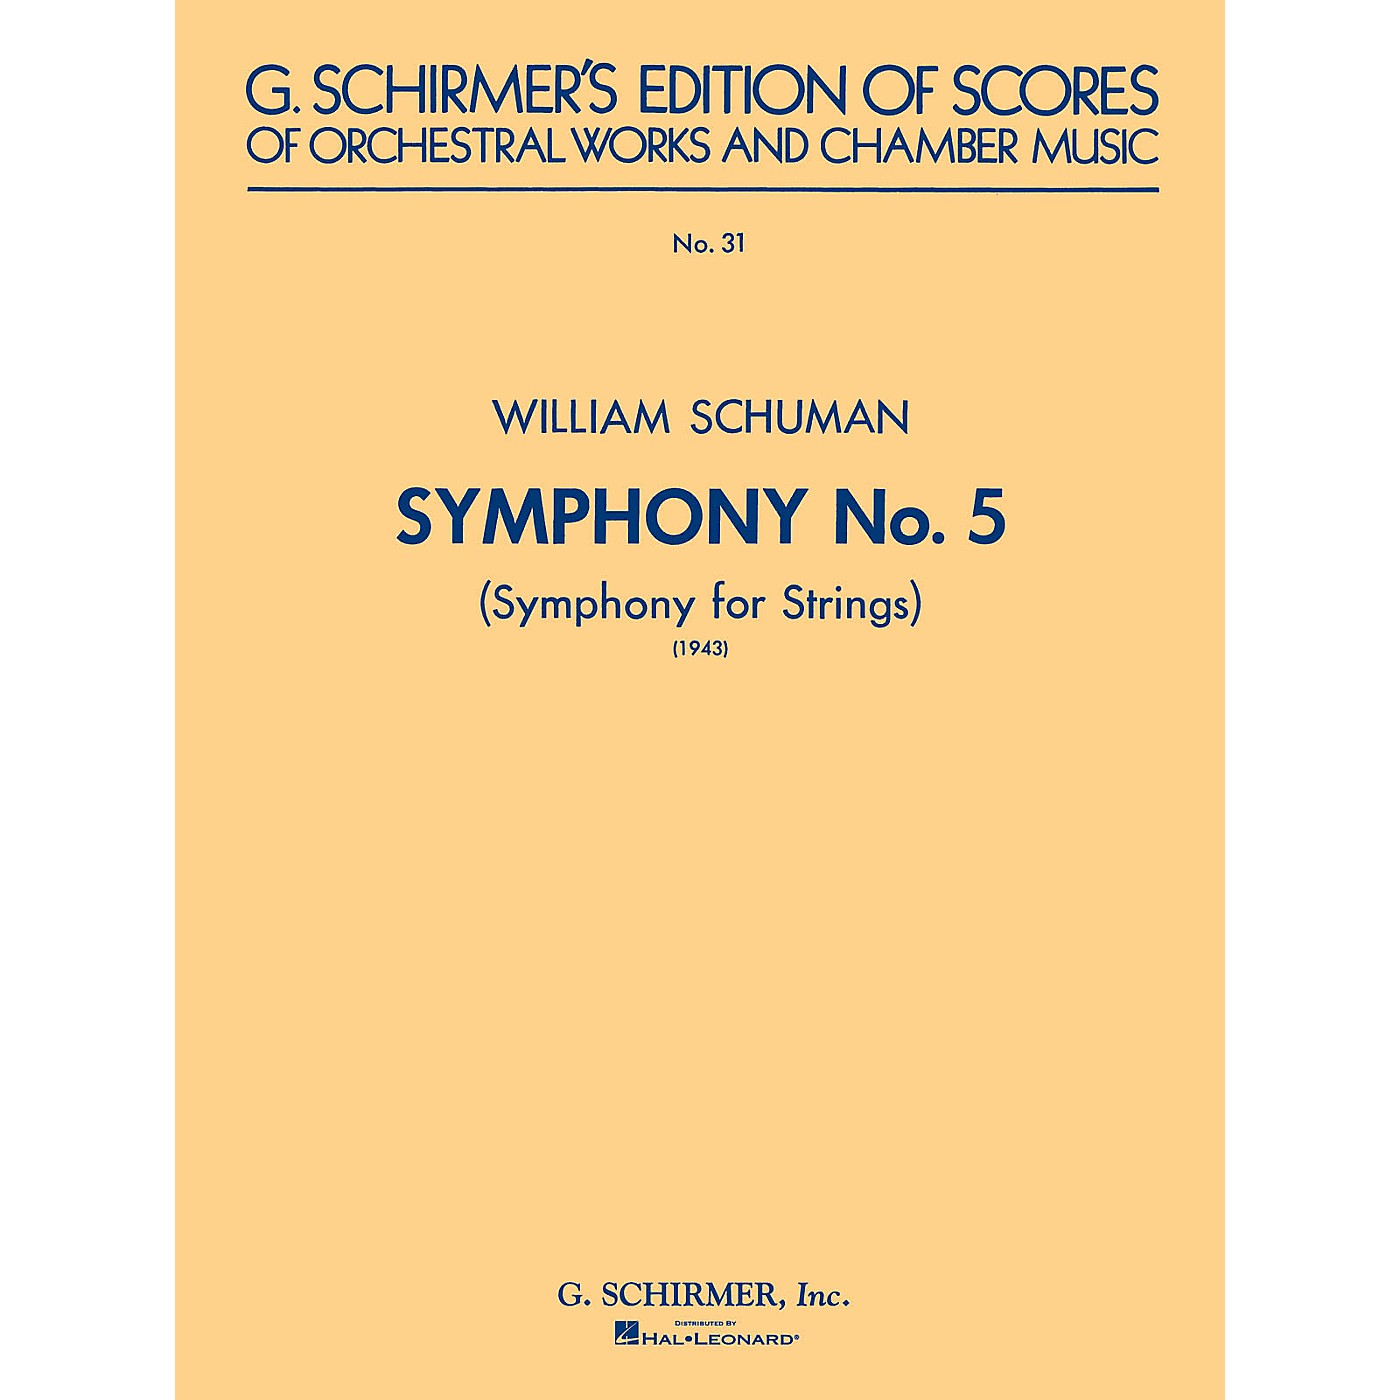 G. Schirmer Symphony No. 5 (1943): Symphony for Strings (Study Score No. 31) Study Score Series by William Schuman thumbnail